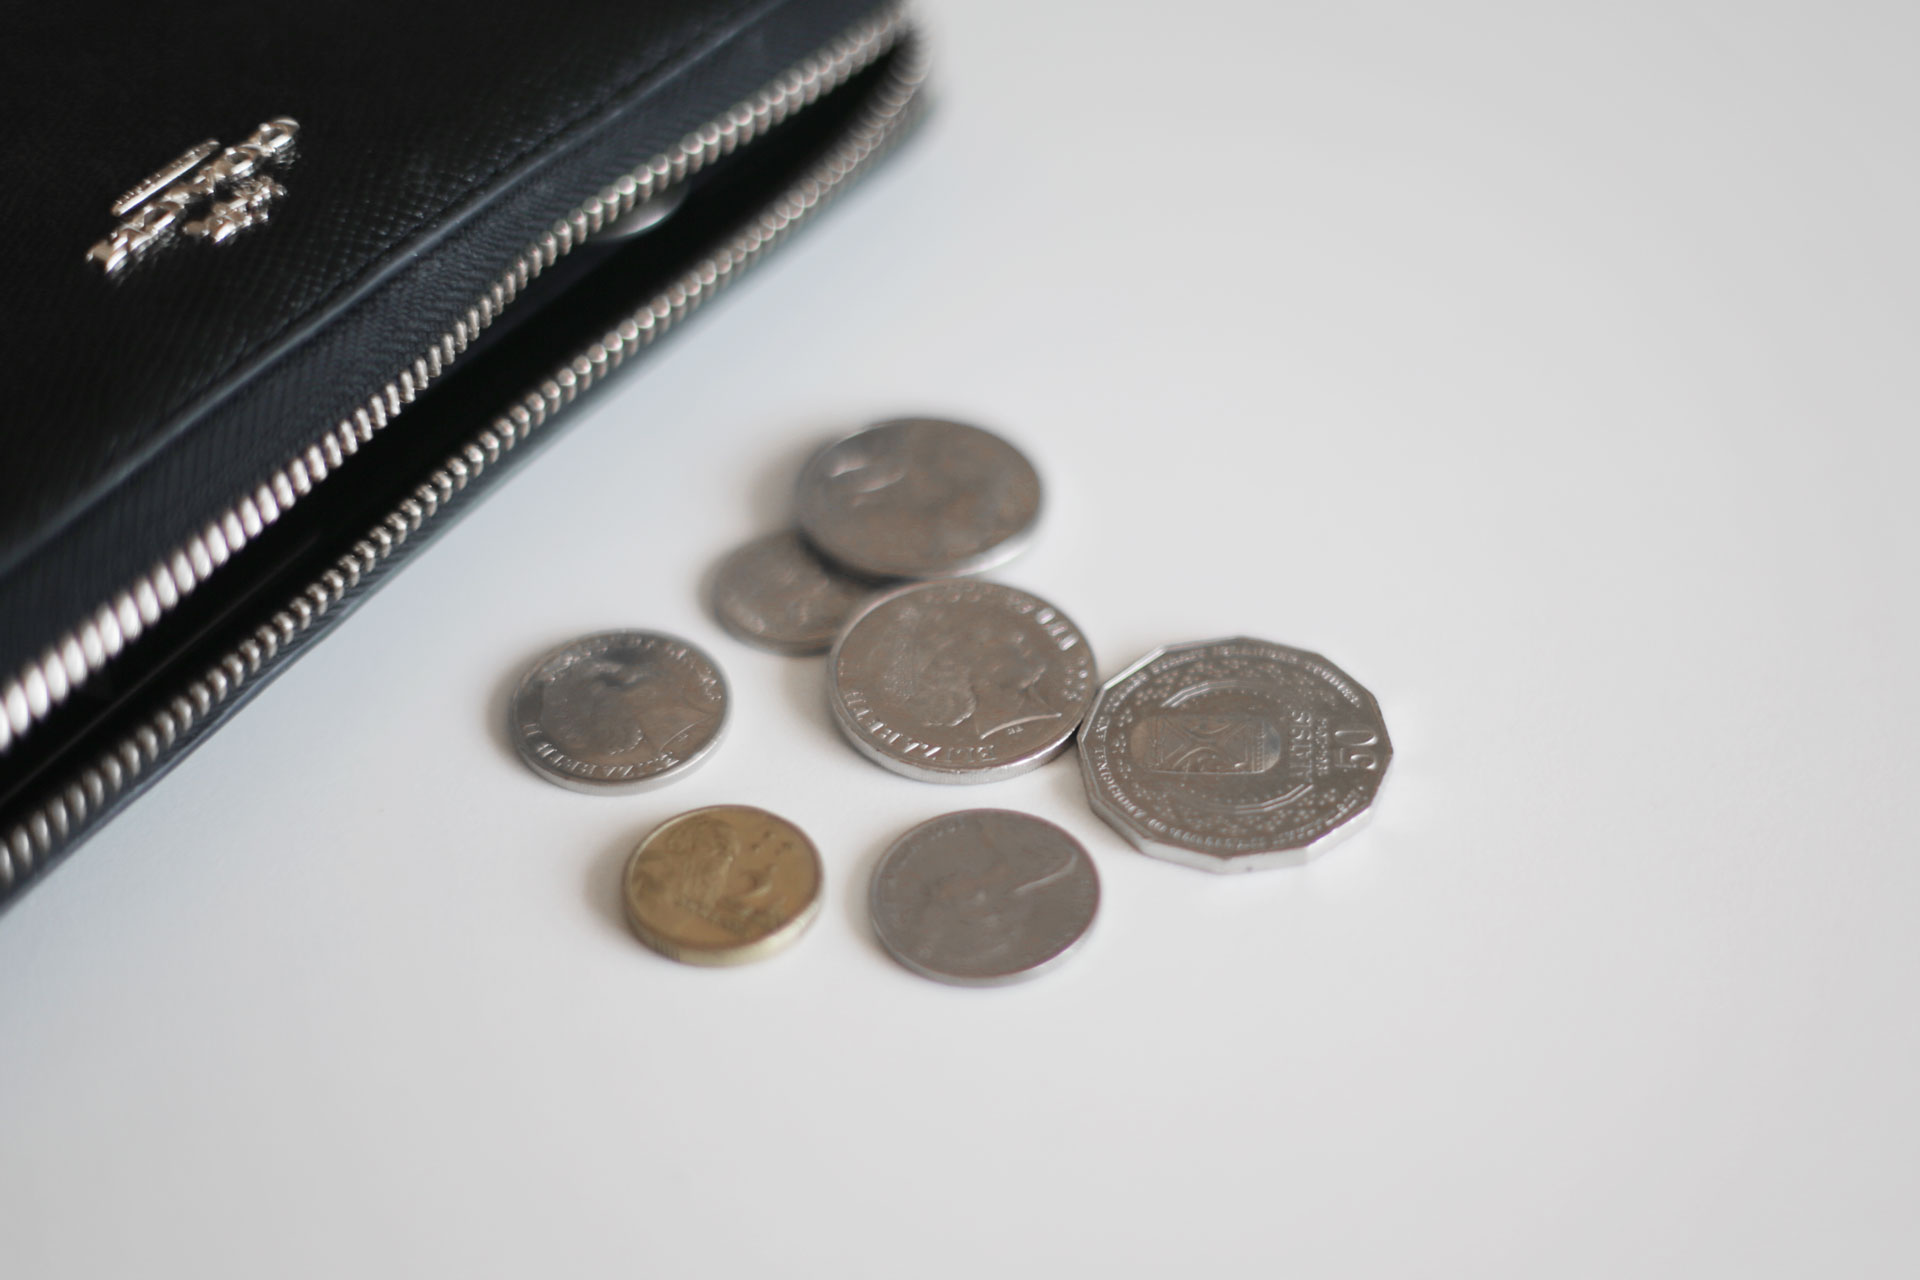 Avoid using your card and use cash instead